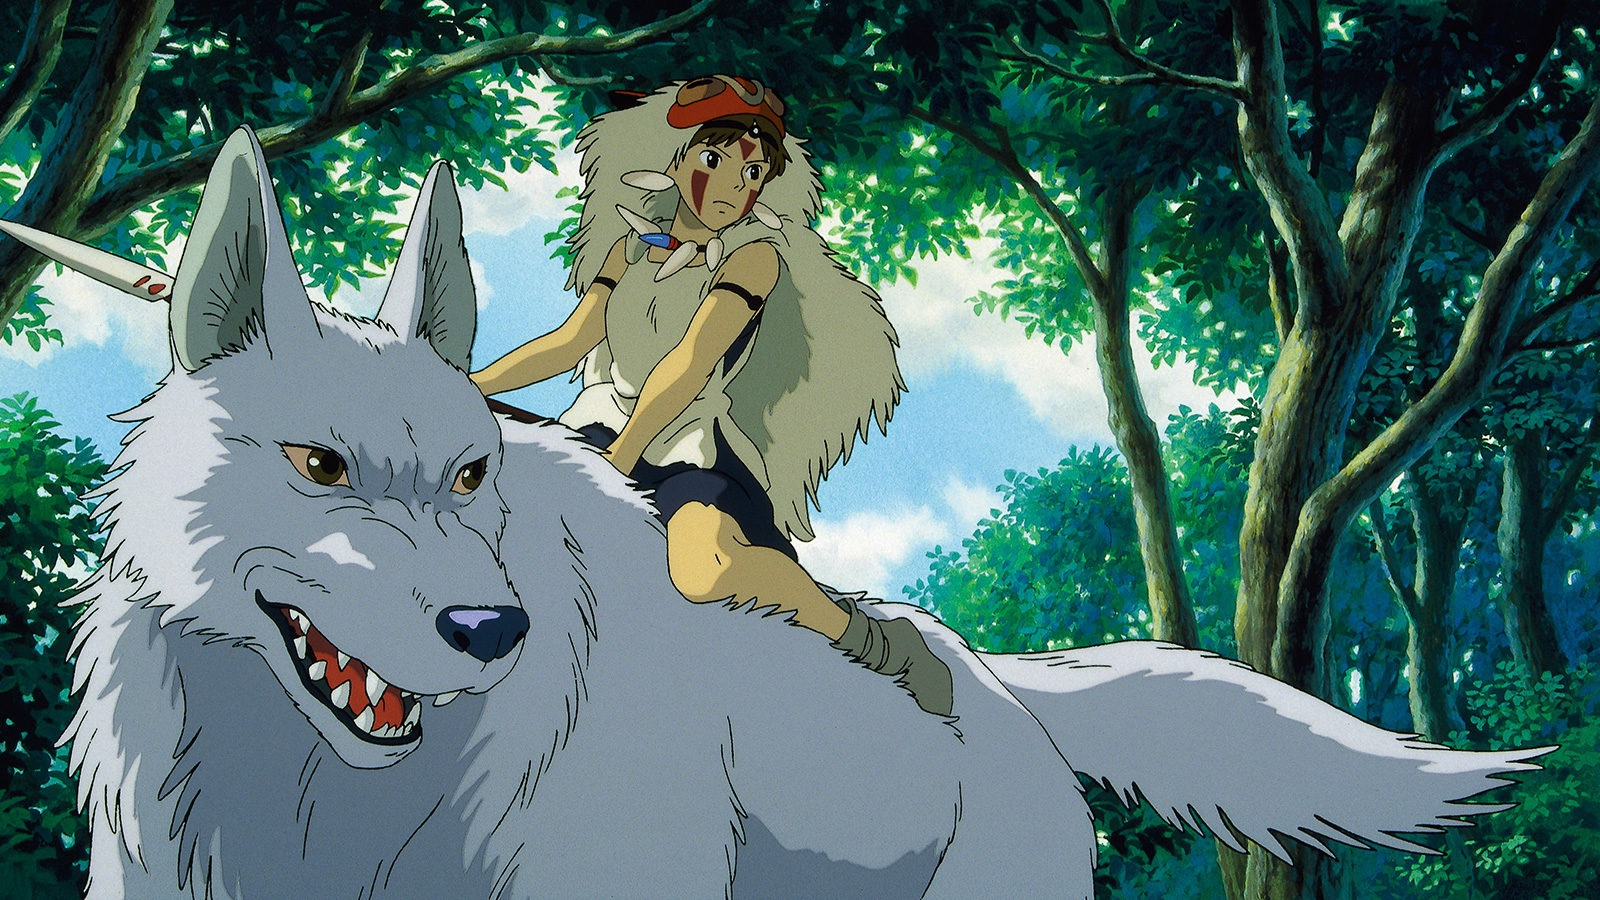 San in Princess Mononoke (1997)